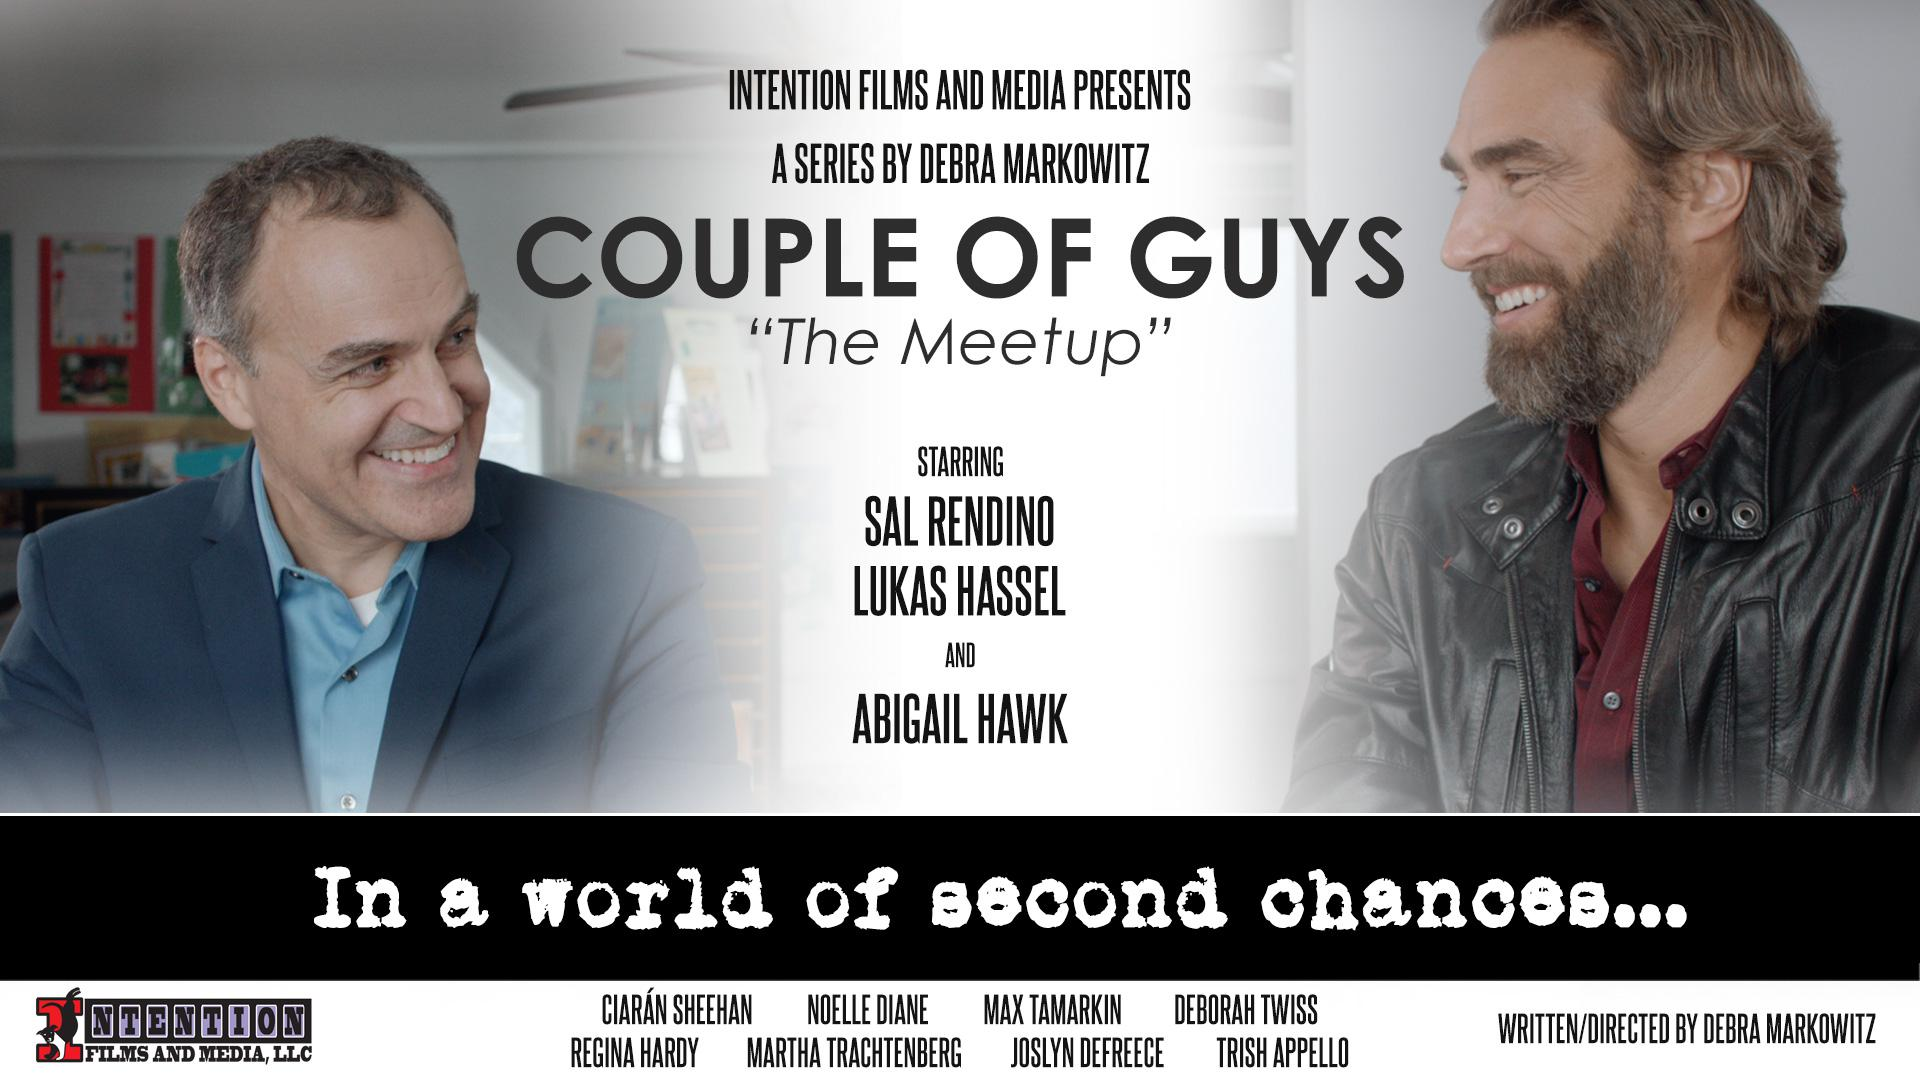 Couple of Guys - Episode 1 - The Meet Up